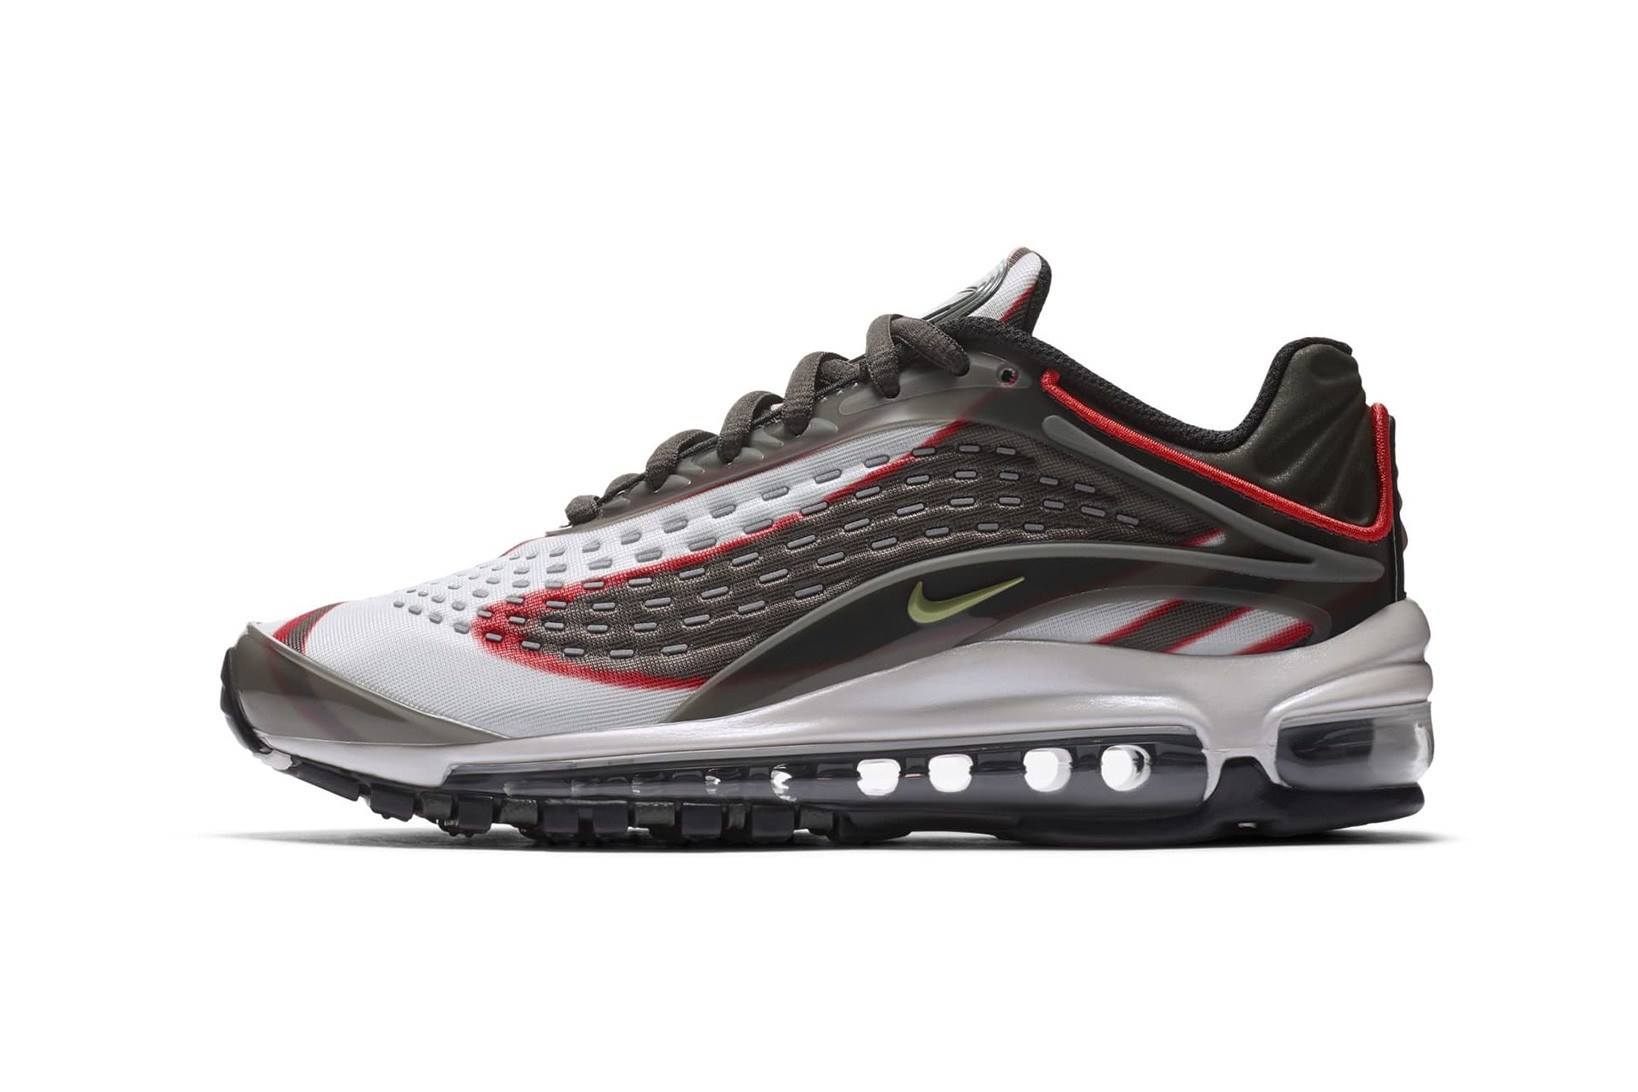 Nike Air Max Deluxe Ushers in Two New